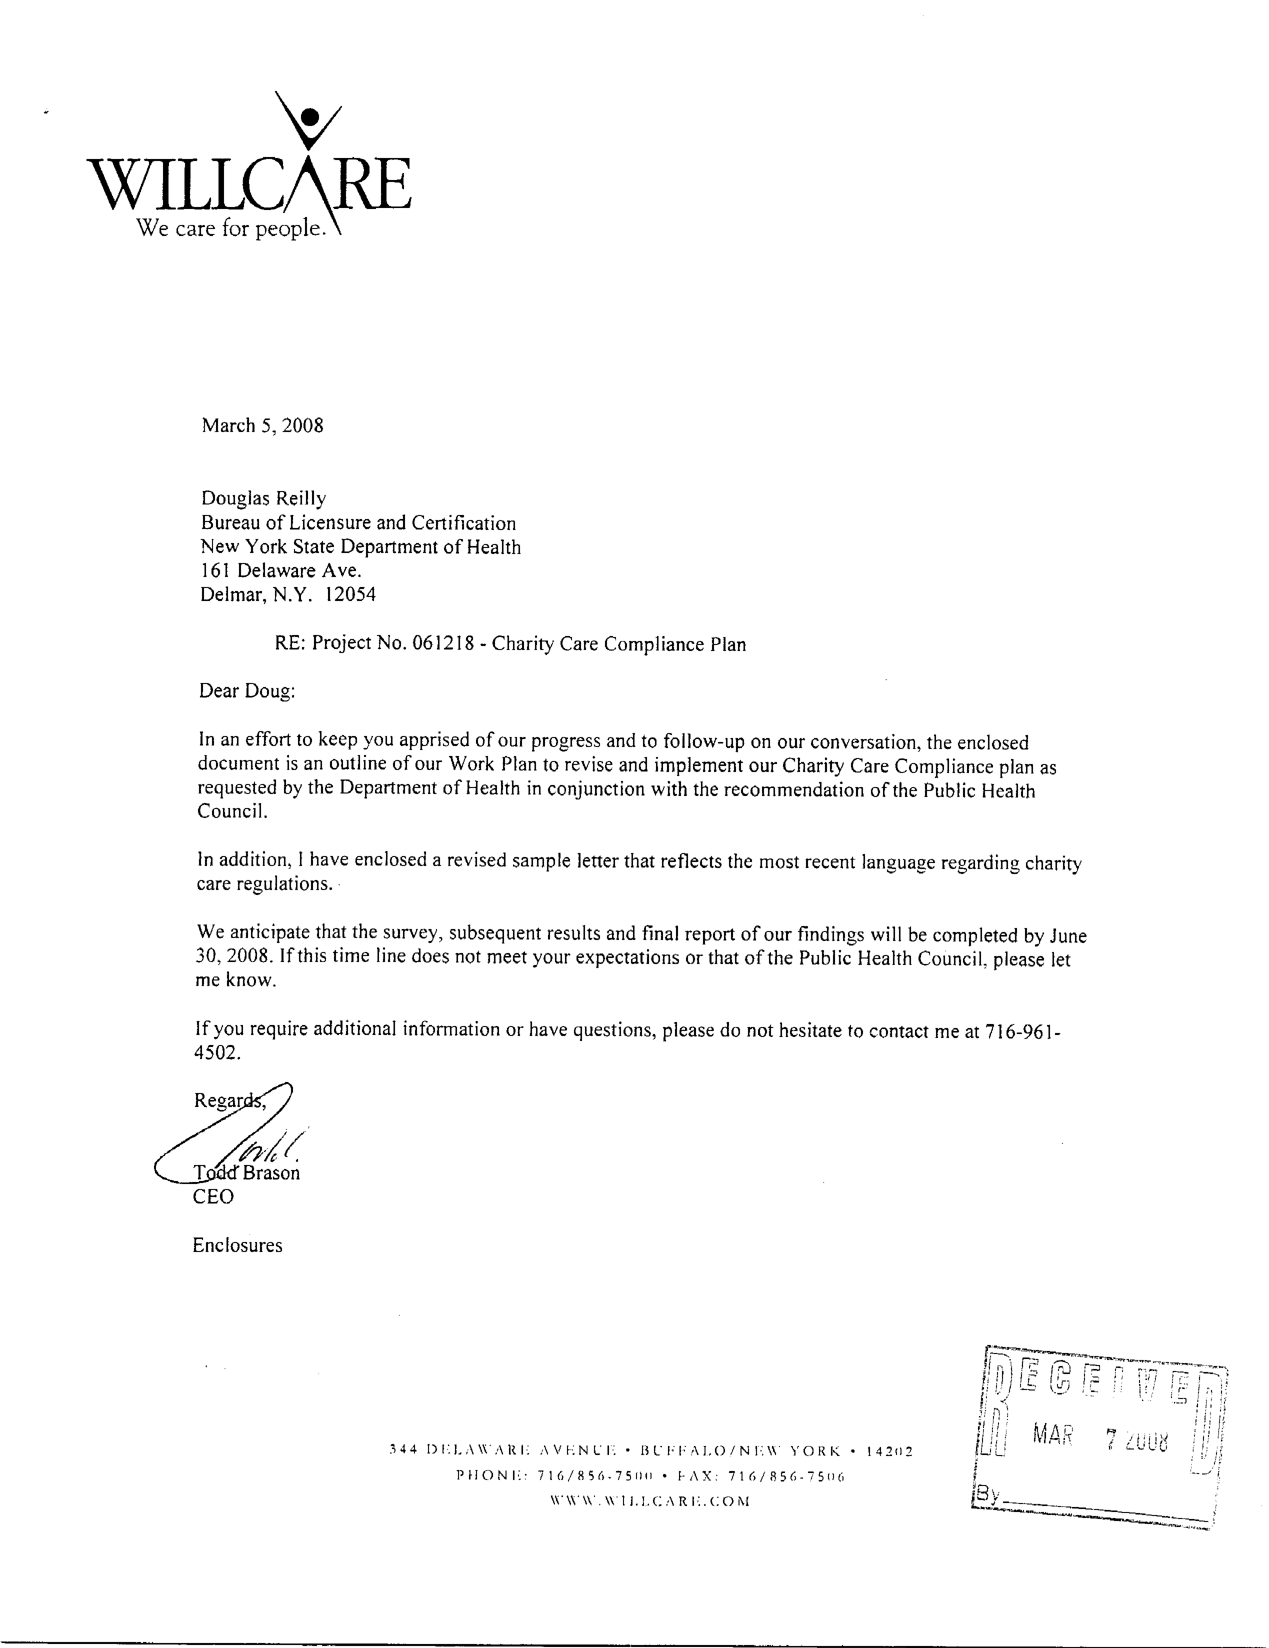 Sales Letter Template Promoting A Service - How to Write A Sales Letter Sample Choice Image Letter format